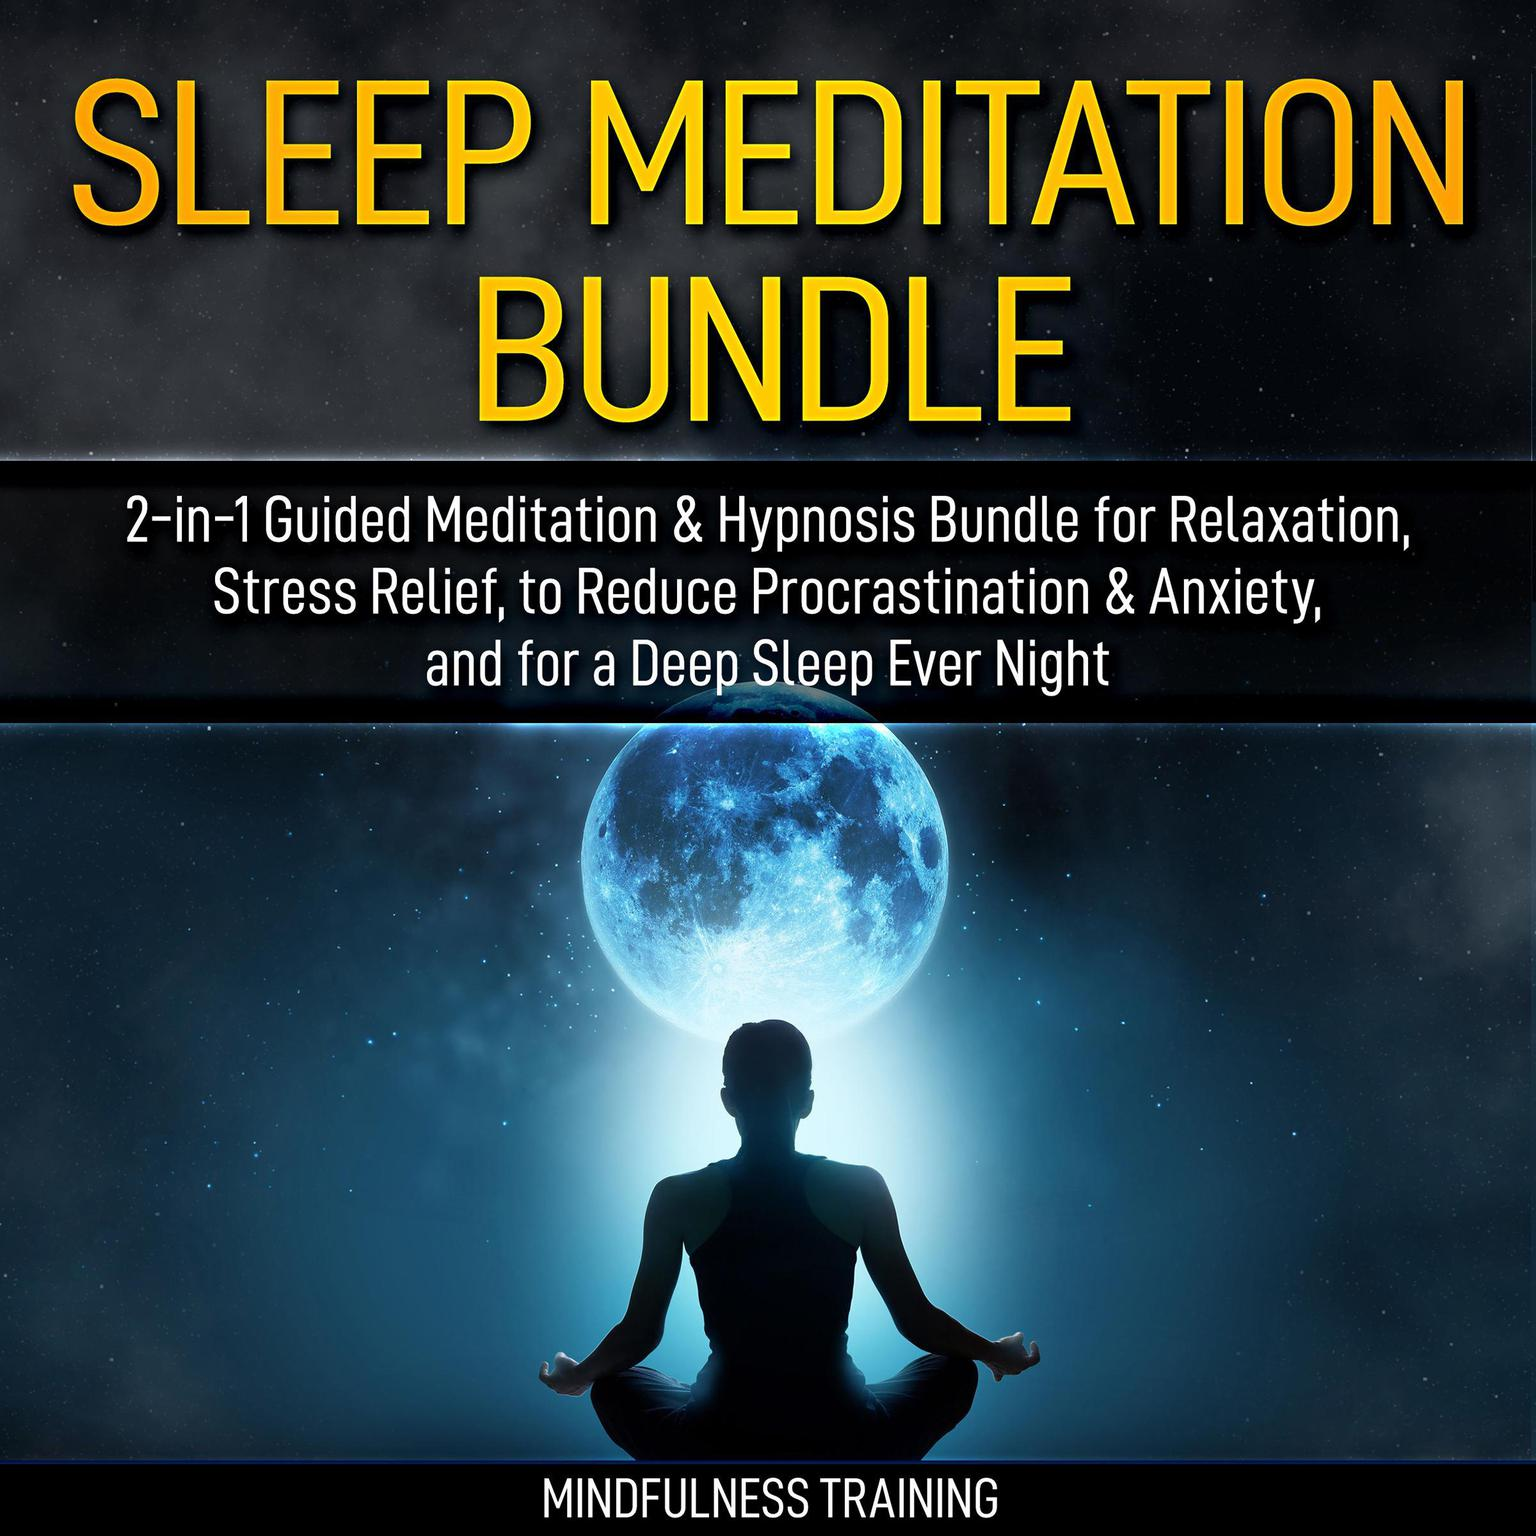 Sleep Meditation Bundle: 2-in-1 Guided Meditation & Hypnosis Bundle for Relaxation, Stress Relief, to Reduce Procrastination & Anxiety, and for a Deep Sleep Every Night (Self Hypnosis, Affirmations, Guided Imagery & Relaxation Techniques Bundle): Self Hypnosis, Affirmations, Guided Imagery & Relaxation Techniques Bundle Audiobook, by Mindfulness Training